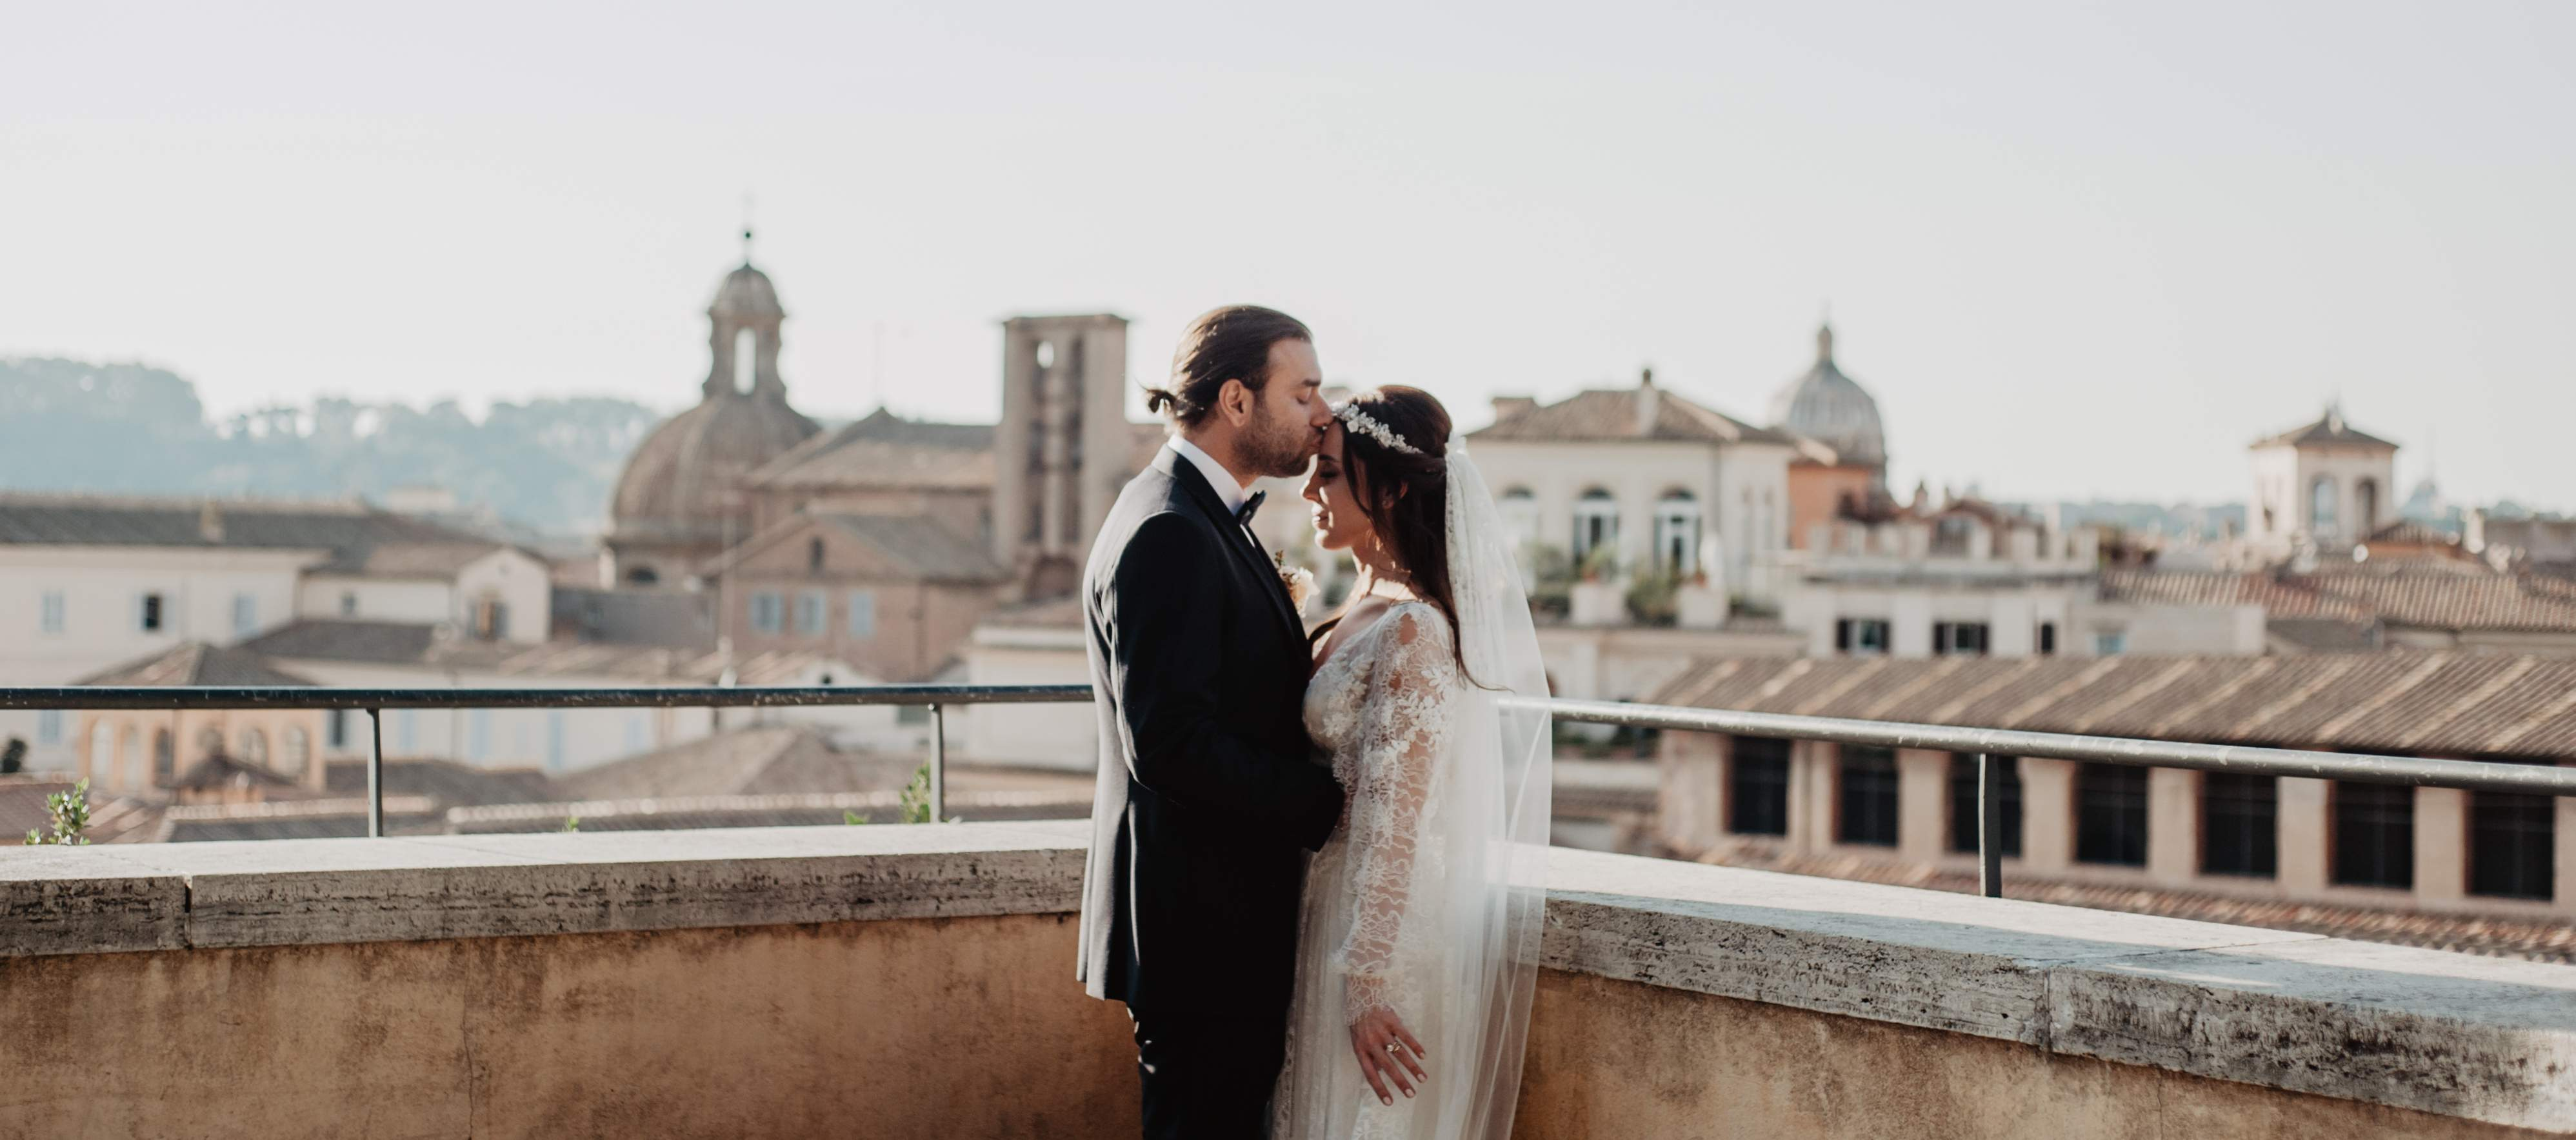 Real Weddings in Italy